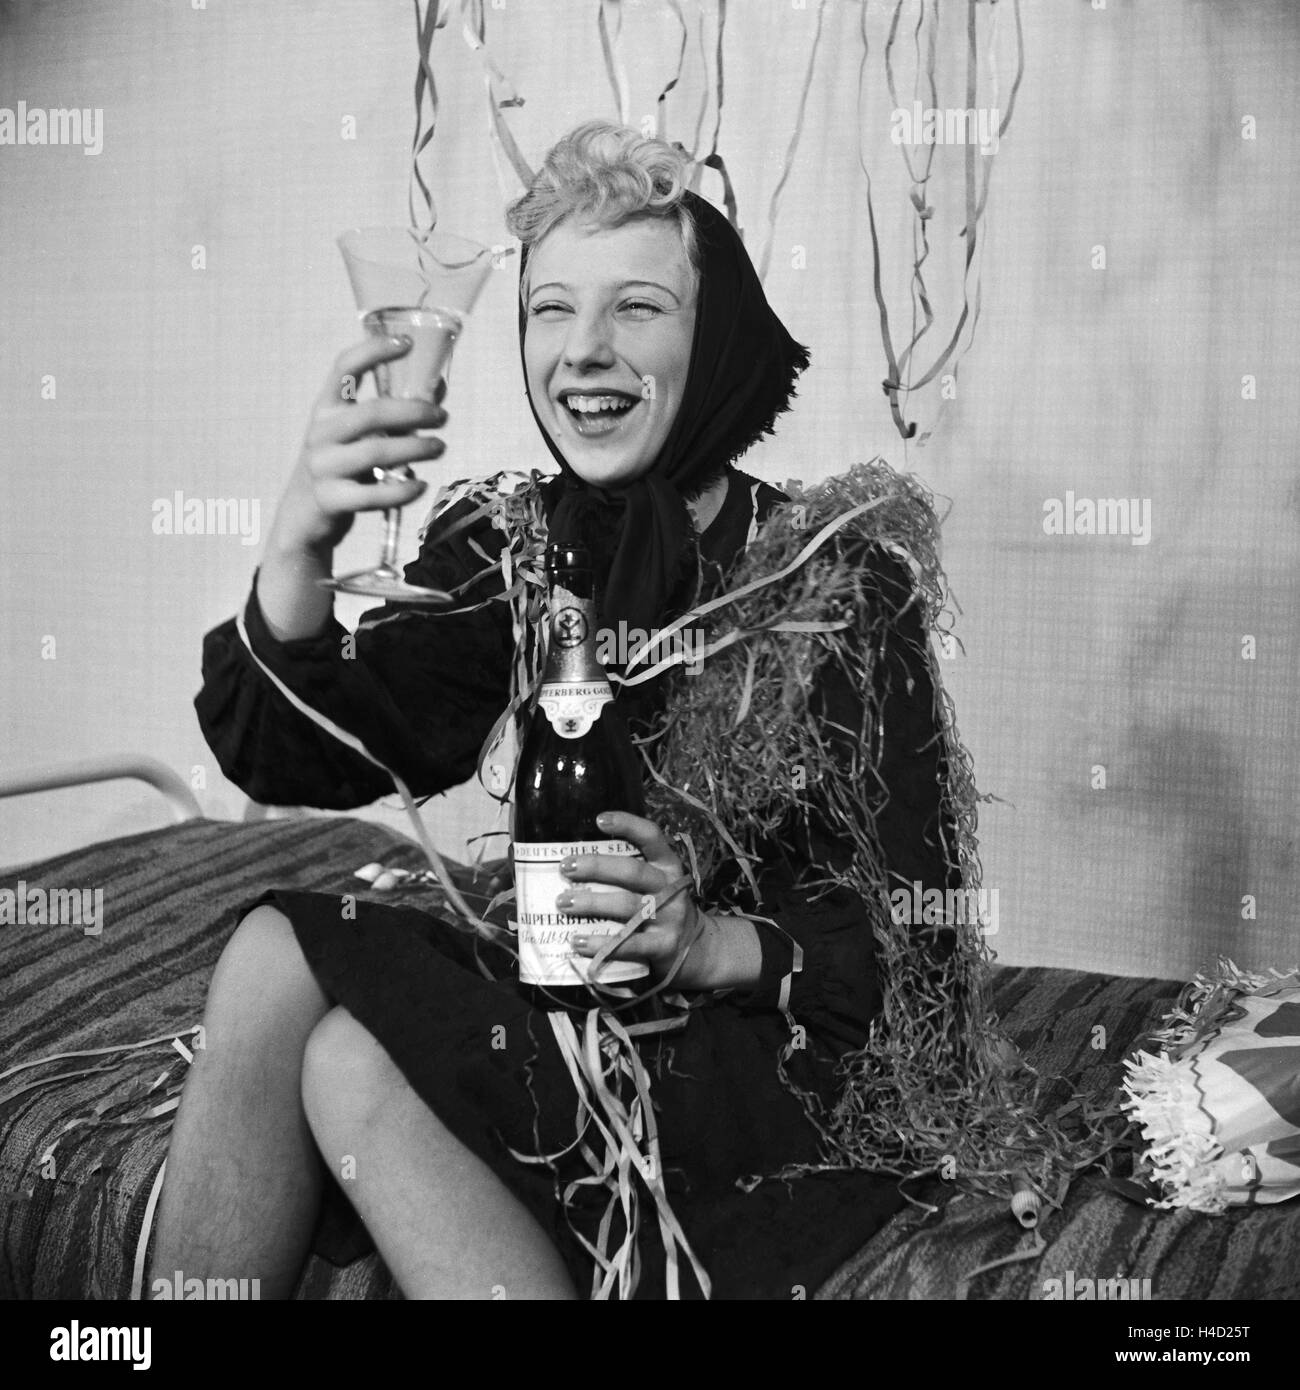 Gast einer Silvesterparty, Deutsches Reich 1930er Jahre. Guest of a New Year's Eve party, Germany 1930s. - Stock Image